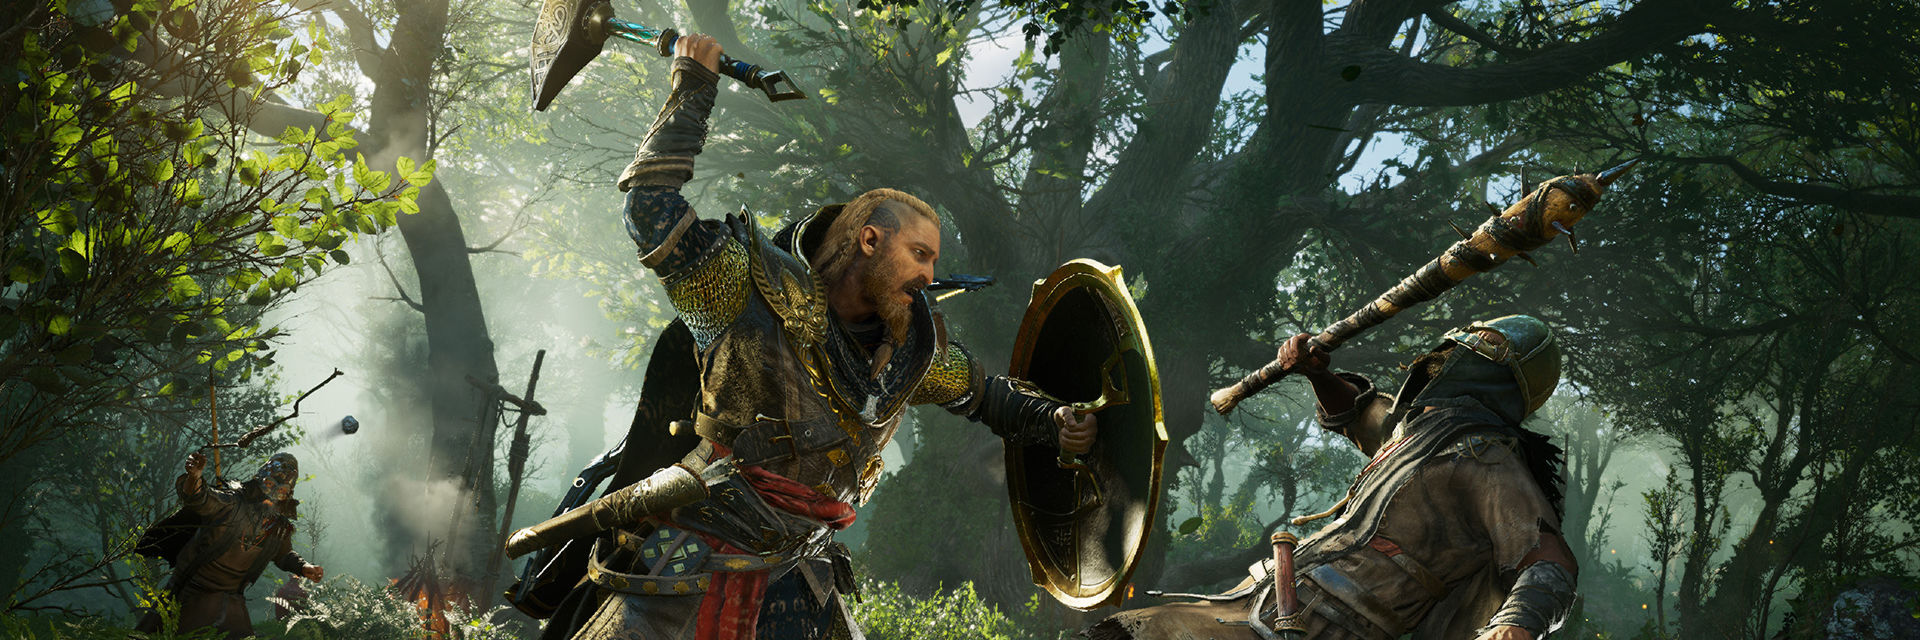 Eivor from Assassin's Creed Valhalla in battle with an early in-game boss.